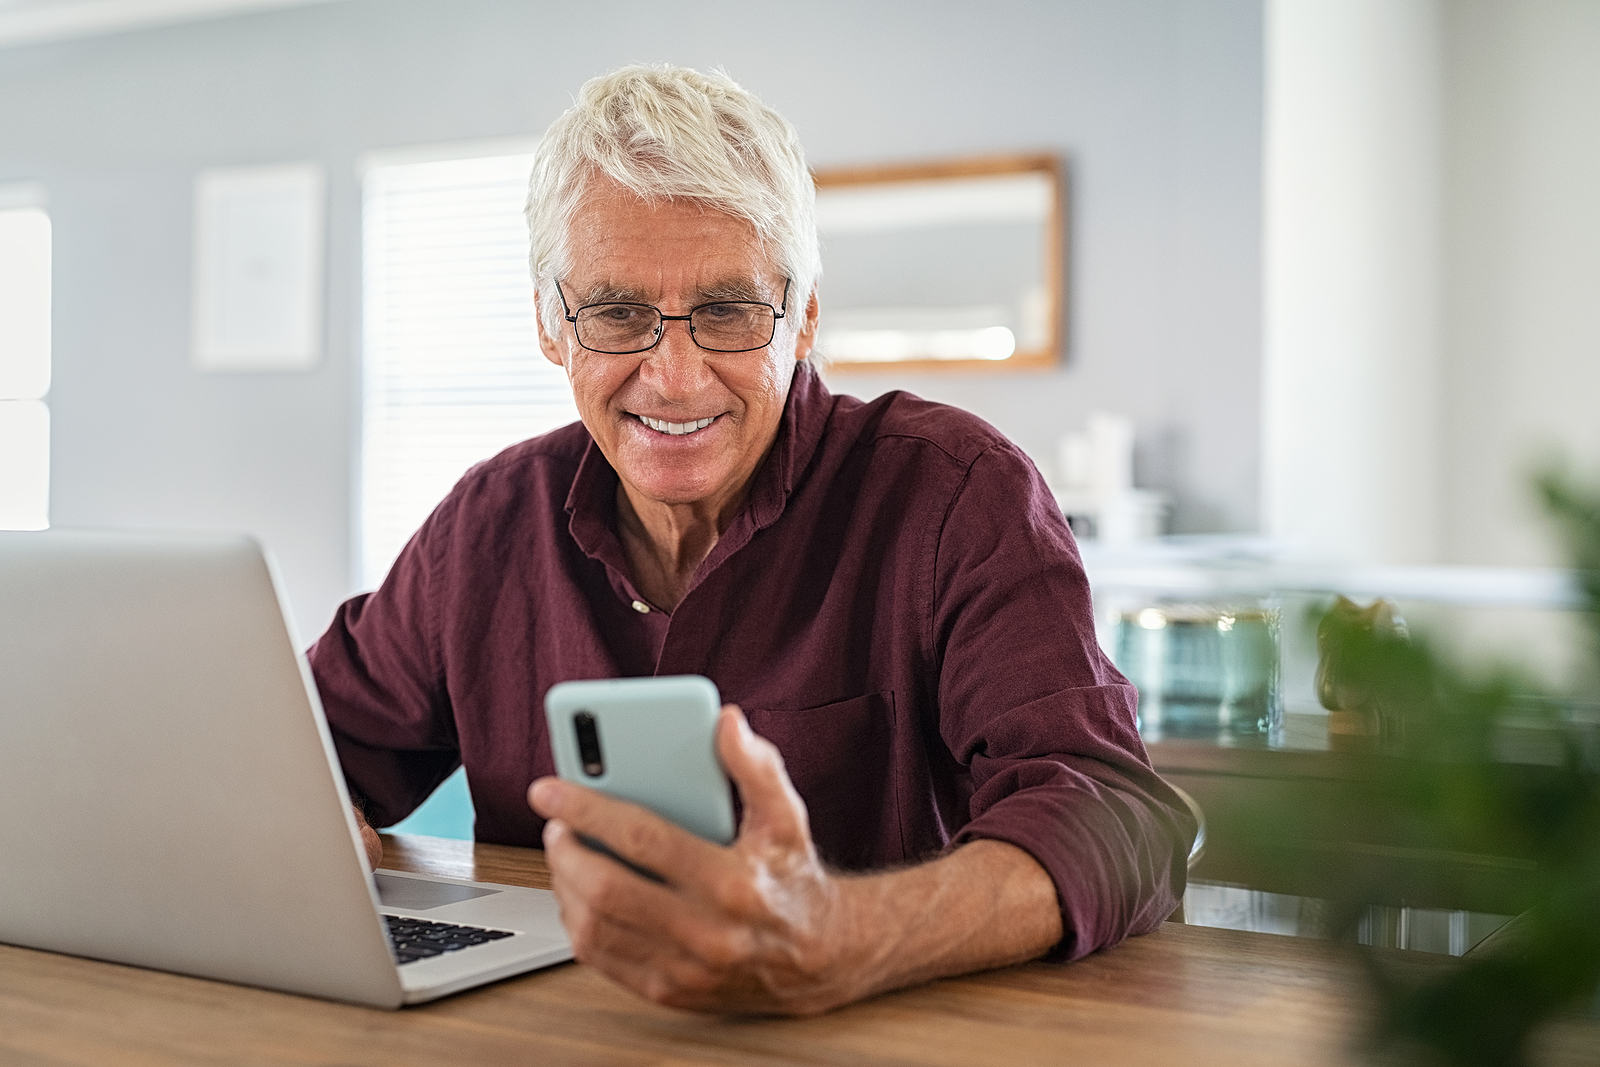 Easy-to-Use Apps for Seniors that Make Everyday Life Easier